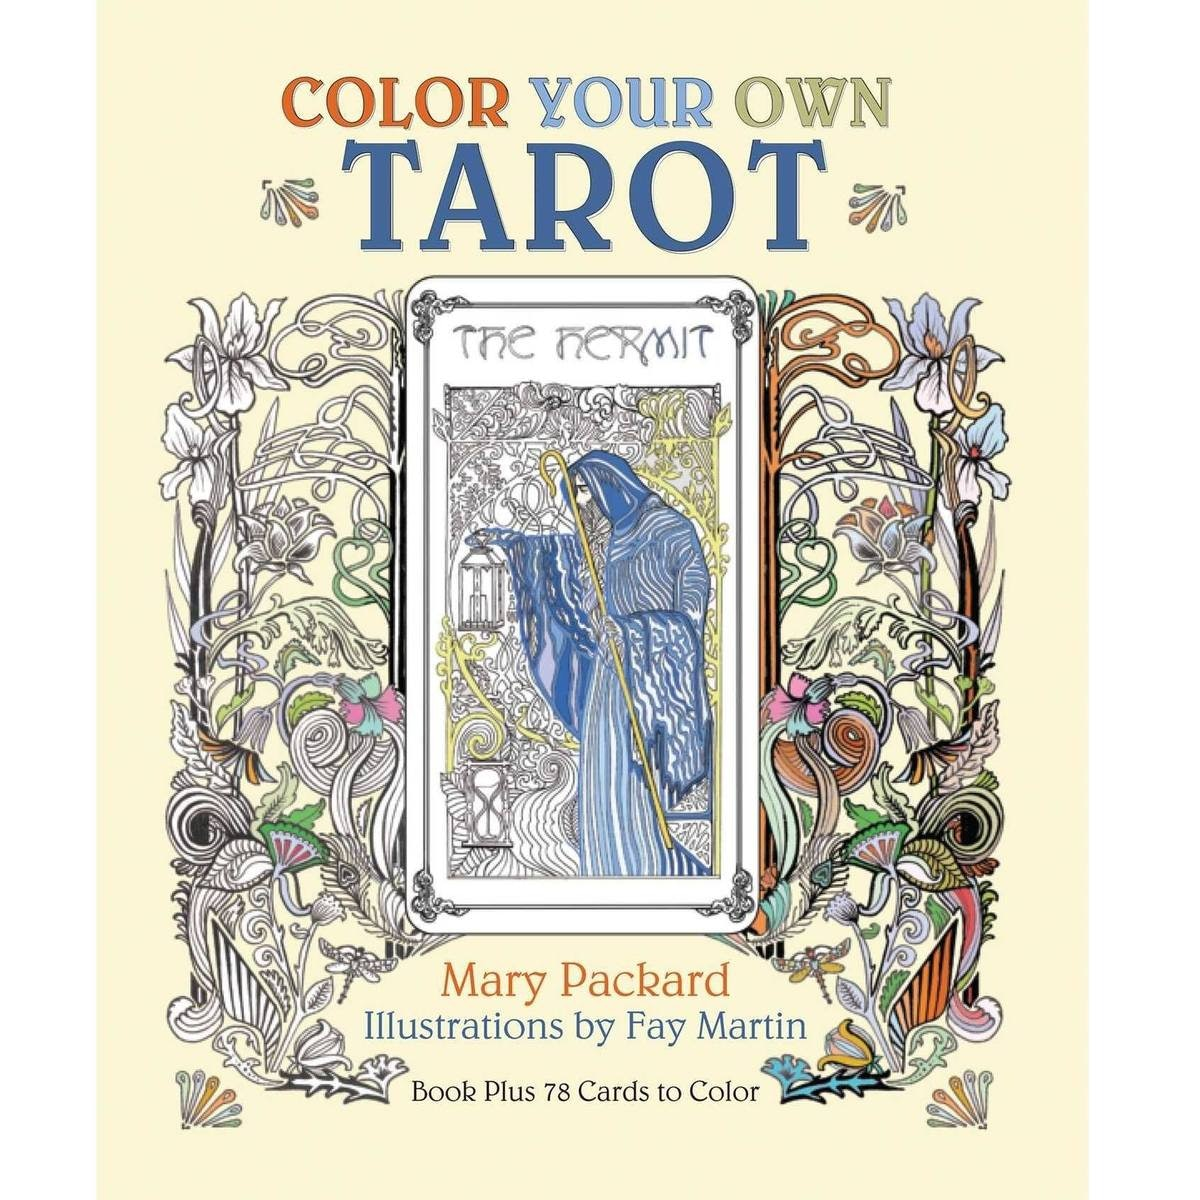 Color Your Own Tarot Book